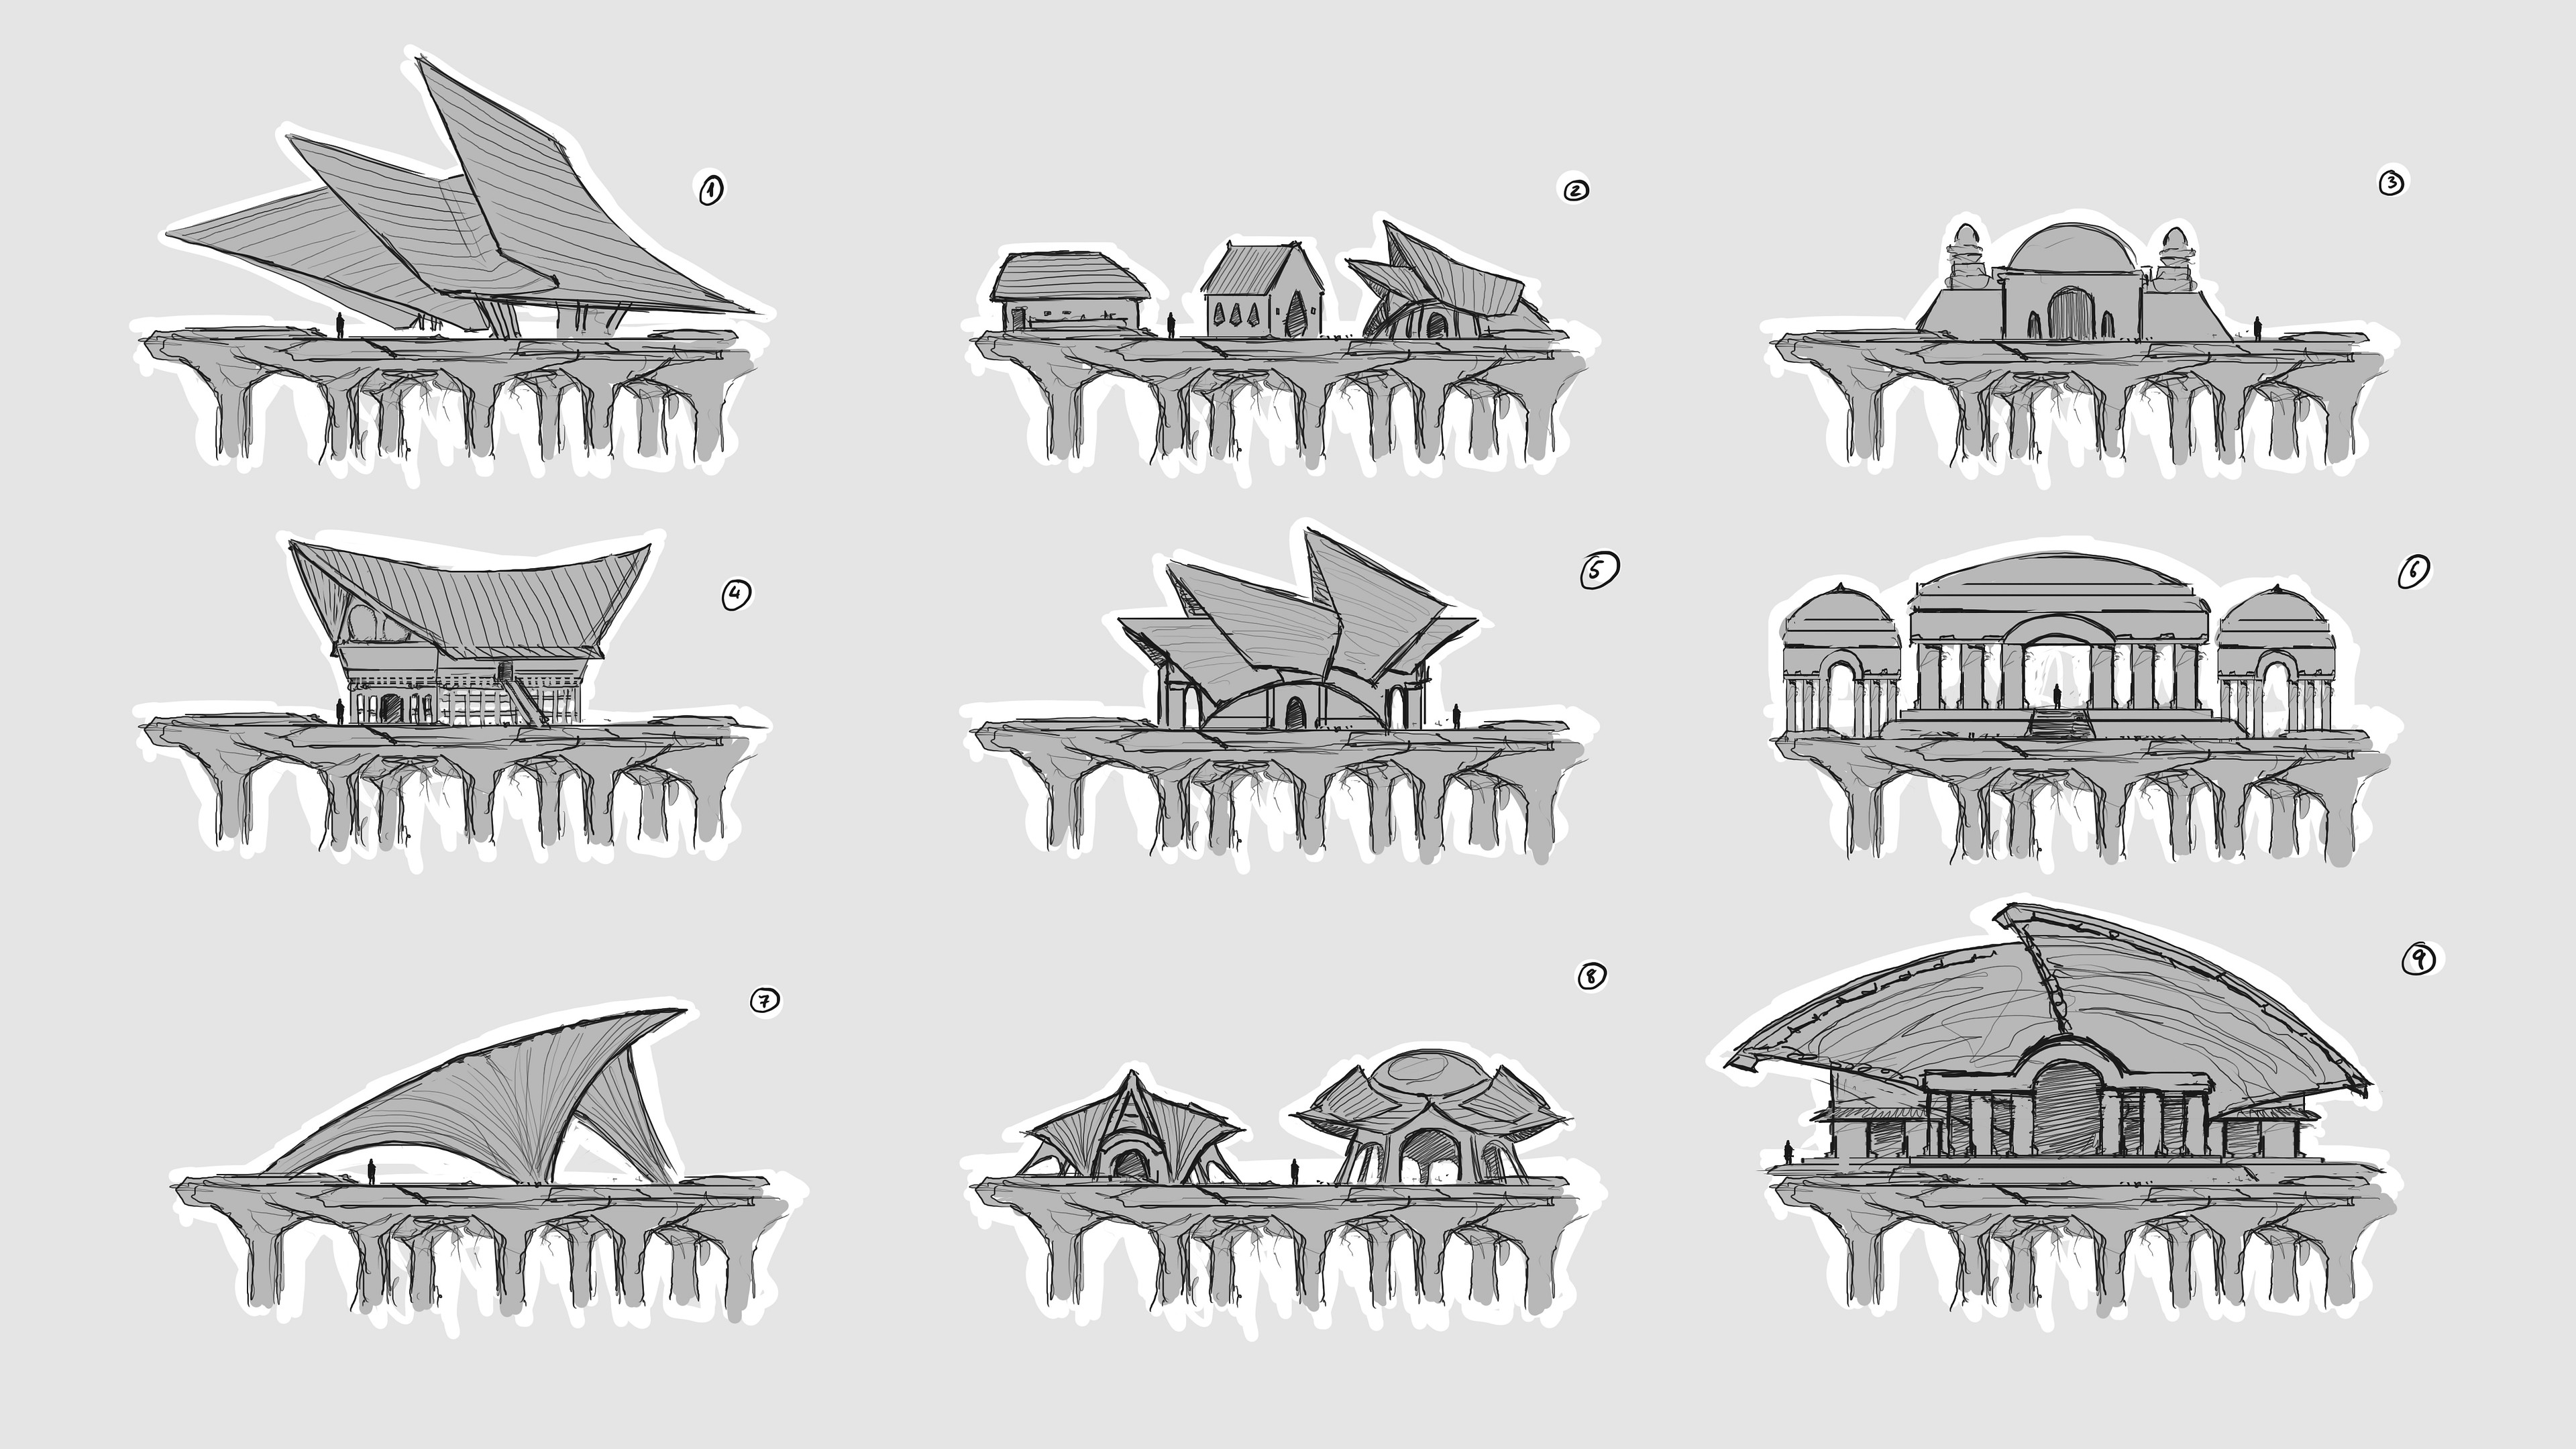 Architectural style exploration, early phase.